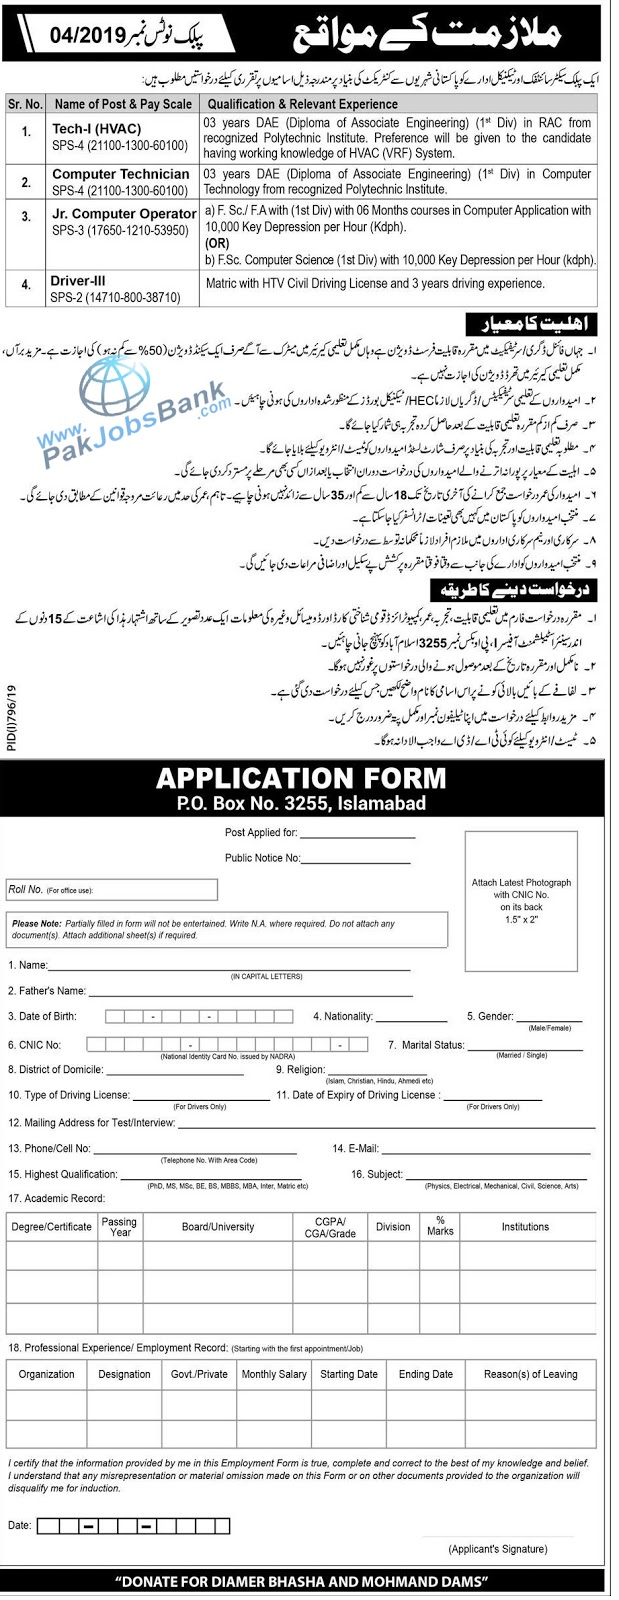 PAEC New Jobs For All Pakistan - PO Box No 3255 New jobs For